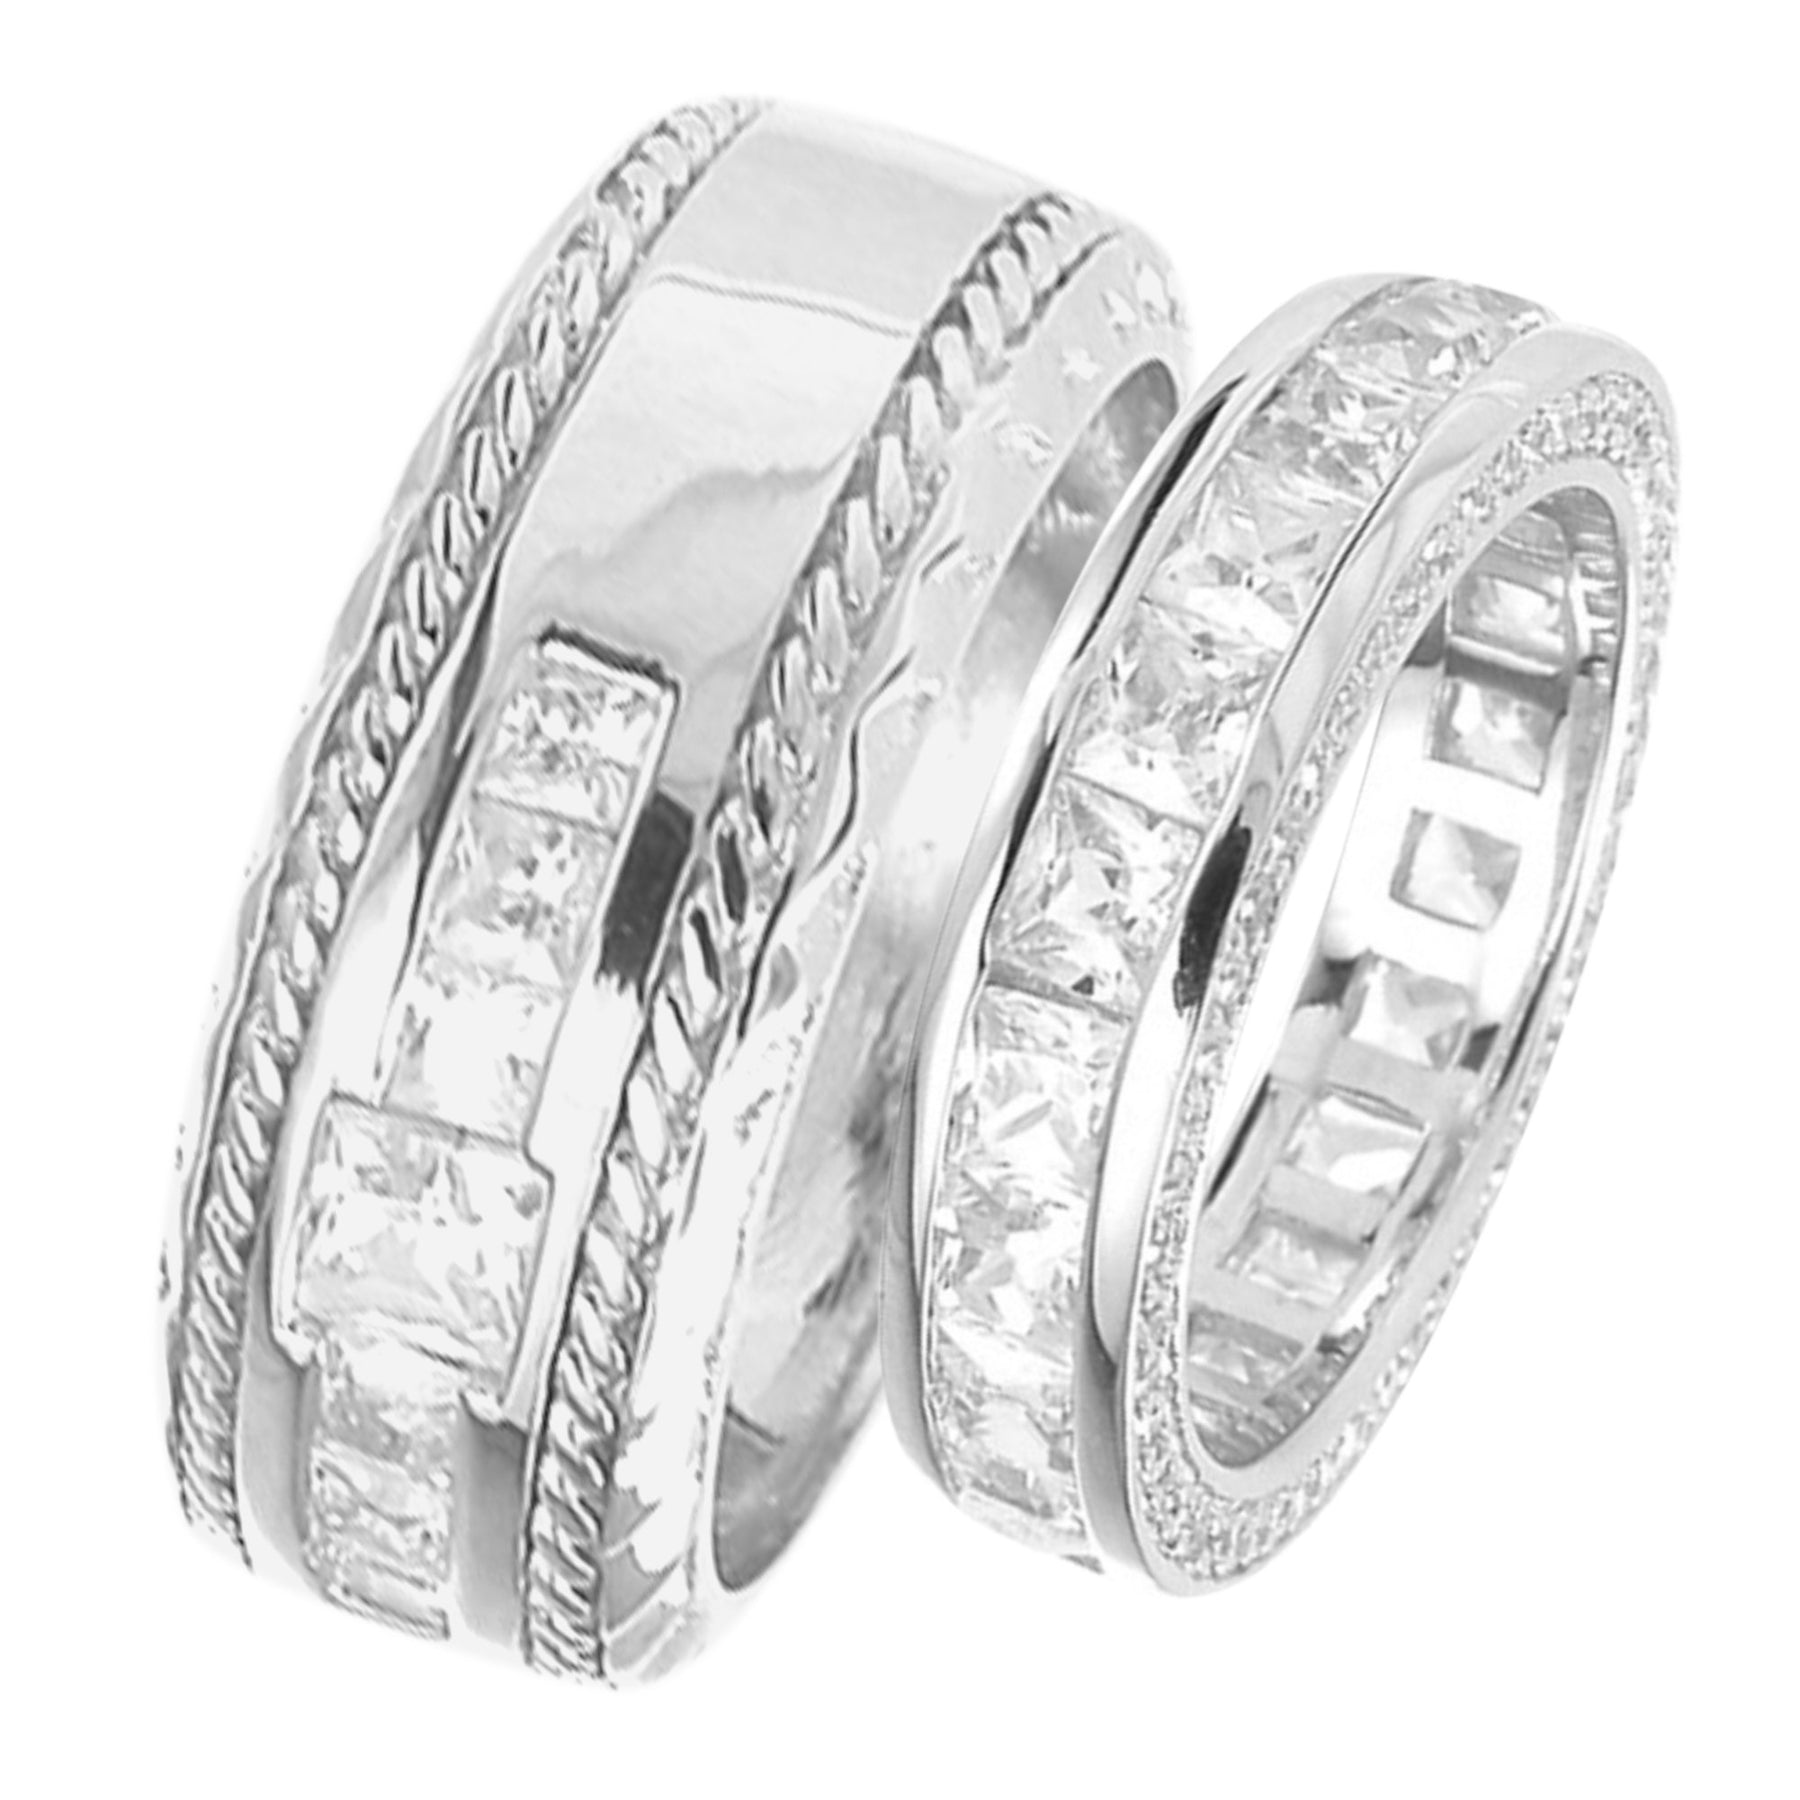 Affordable His Hers Wedding Rings Set Silver Matching Bands Him Her